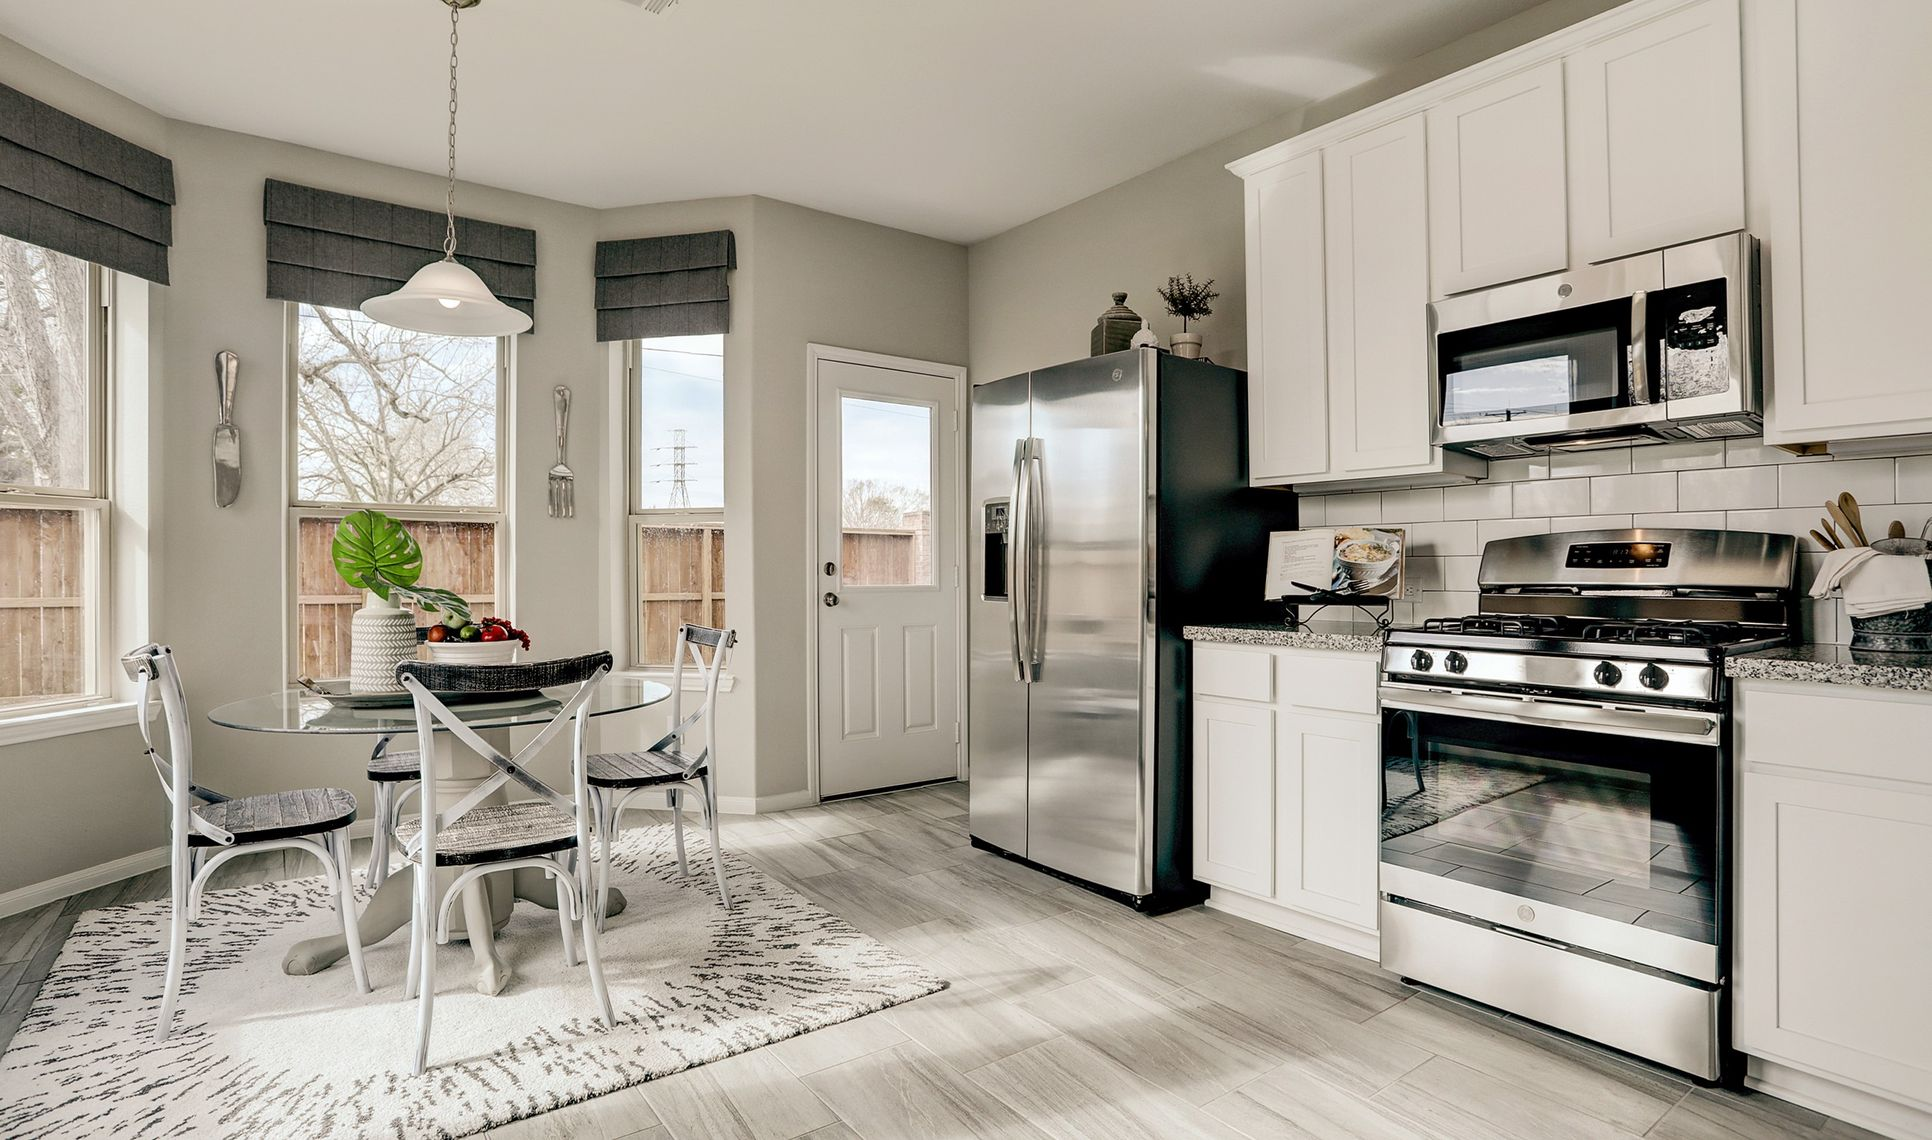 Interior:Kitchen open to dining area